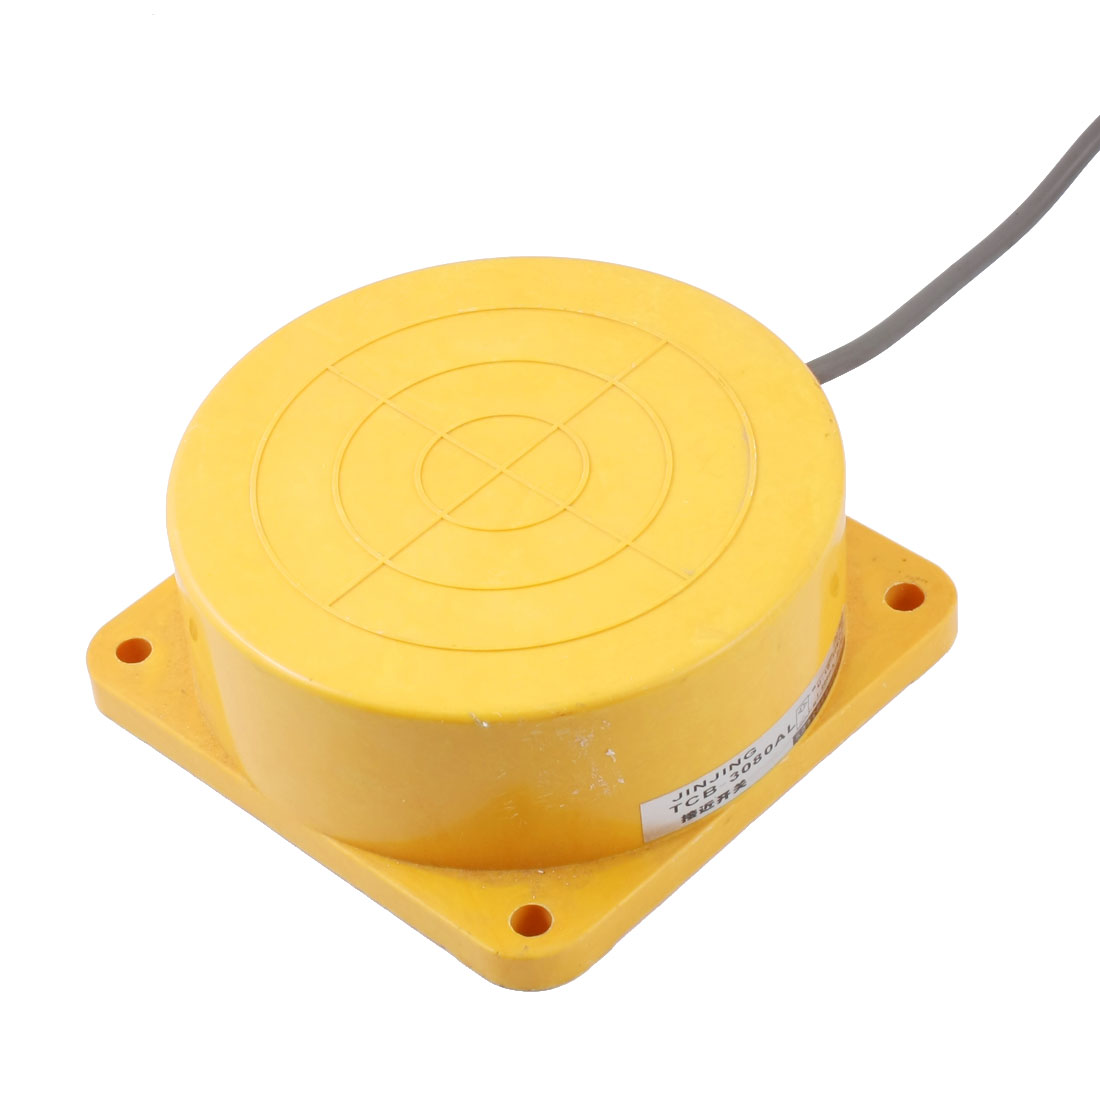 TCB-3080AL NO 80mm Detection Distance Inductive Sensor Proximity Switch